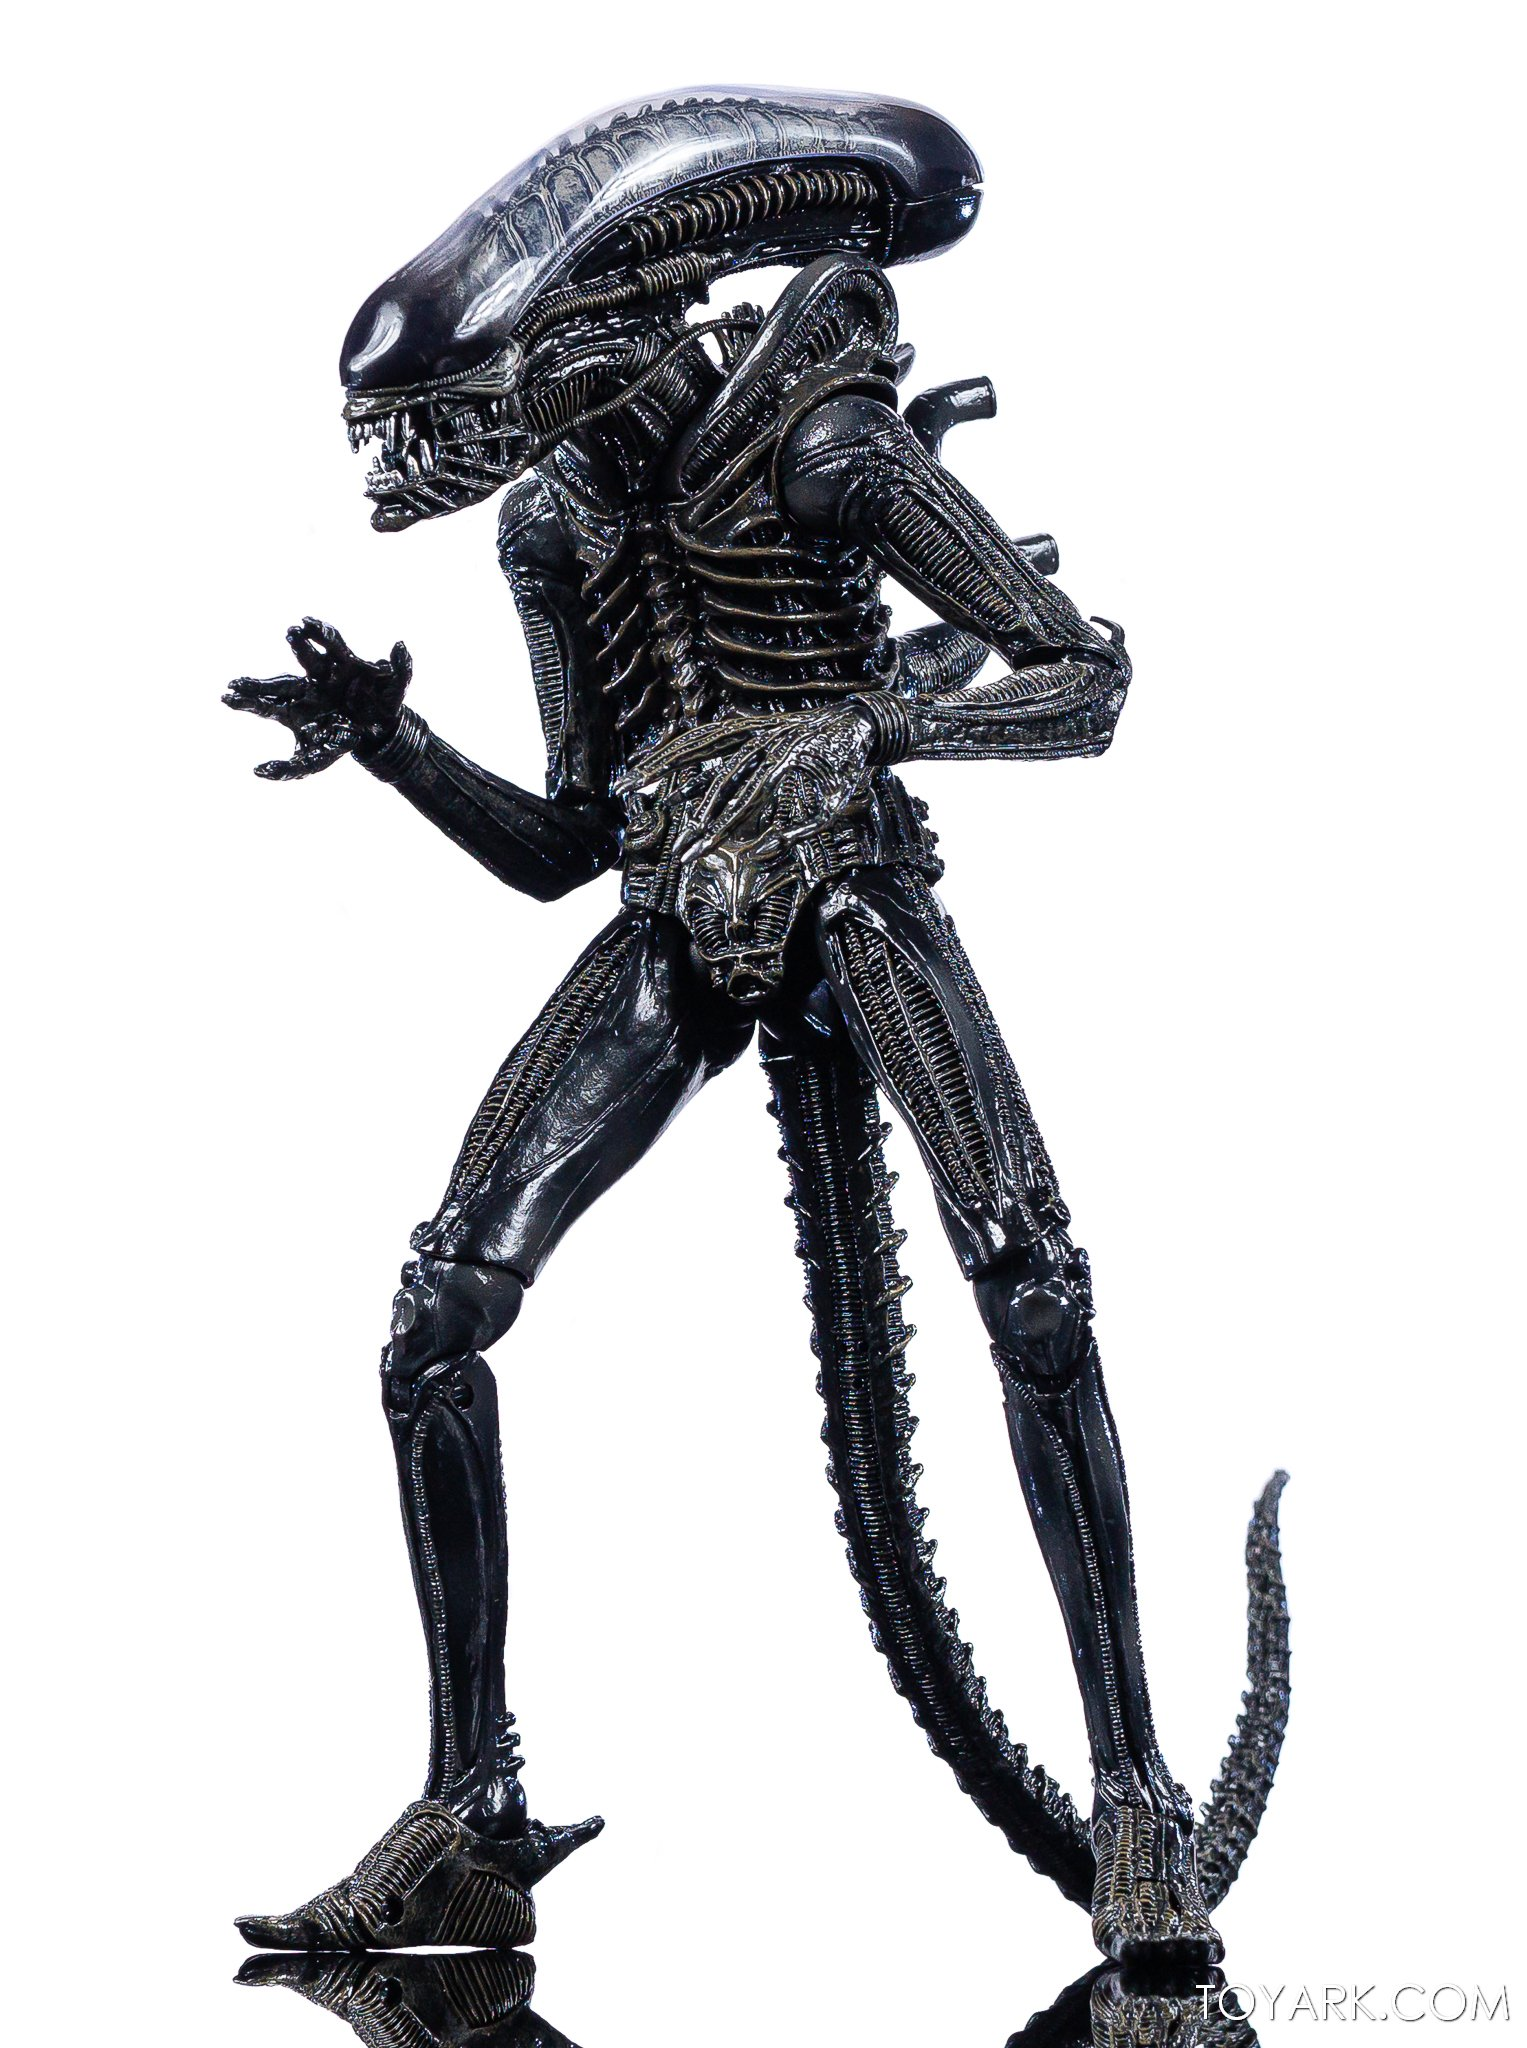 https://news.toyark.com/wp-content/uploads/sites/4/2020/01/NECA-Big-Chap-Alien-Ultimate-007.jpg